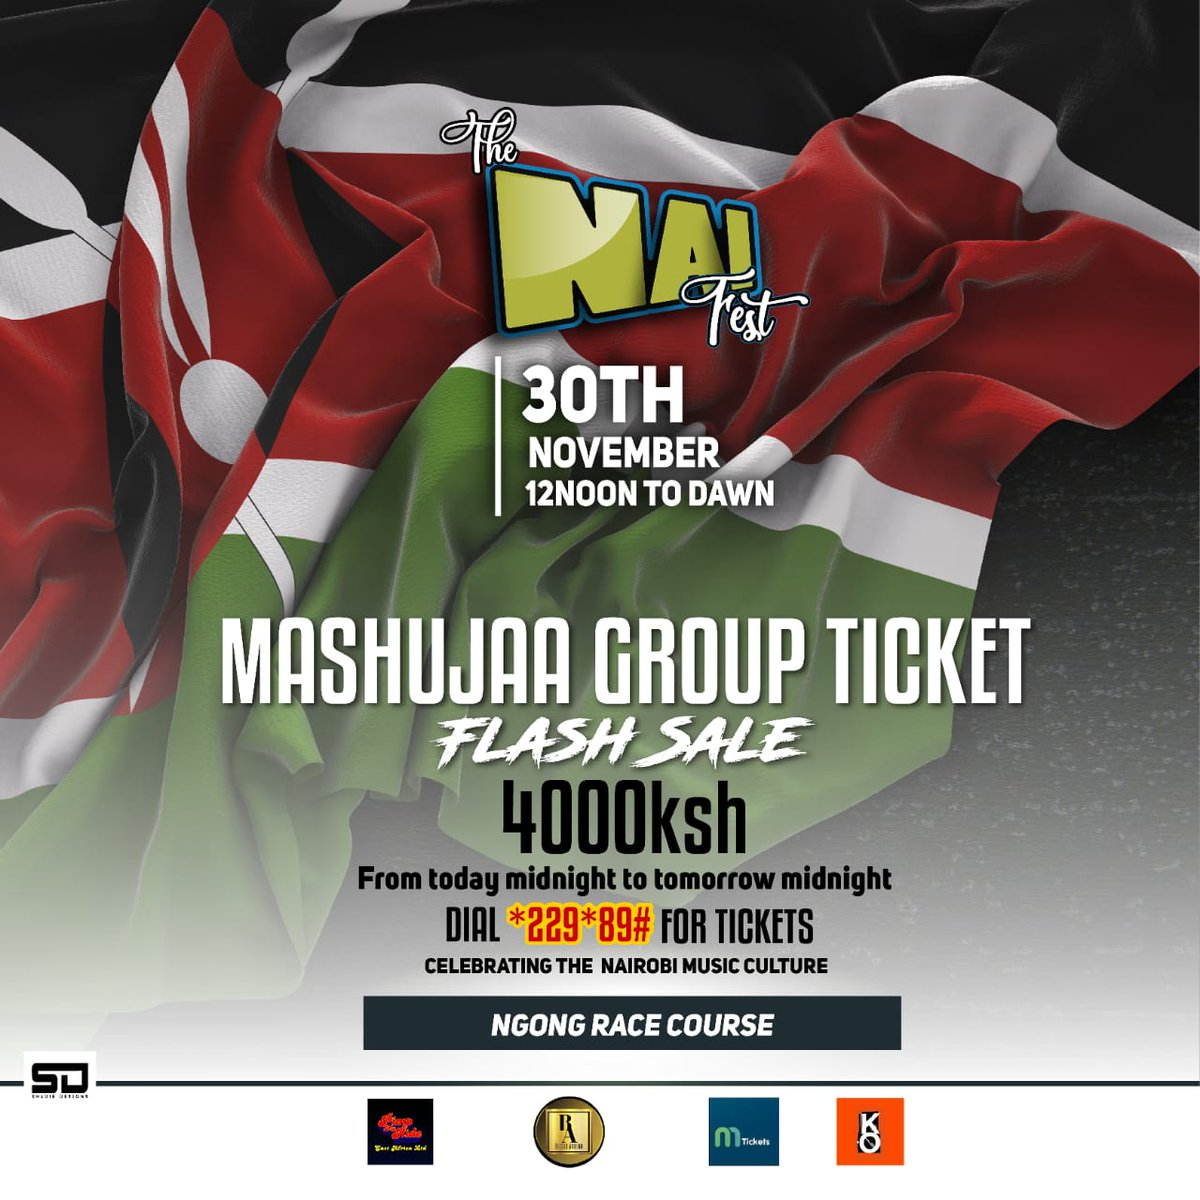 #TheNaiFest ¦ Mashujaa day comes bearing gifts... Get Nai Fest flash sale tickets at discounted prices. Ksh. 4000/- Group of 5 Dial *229*89# to get tickets 🎟 #MashujaaDay2019